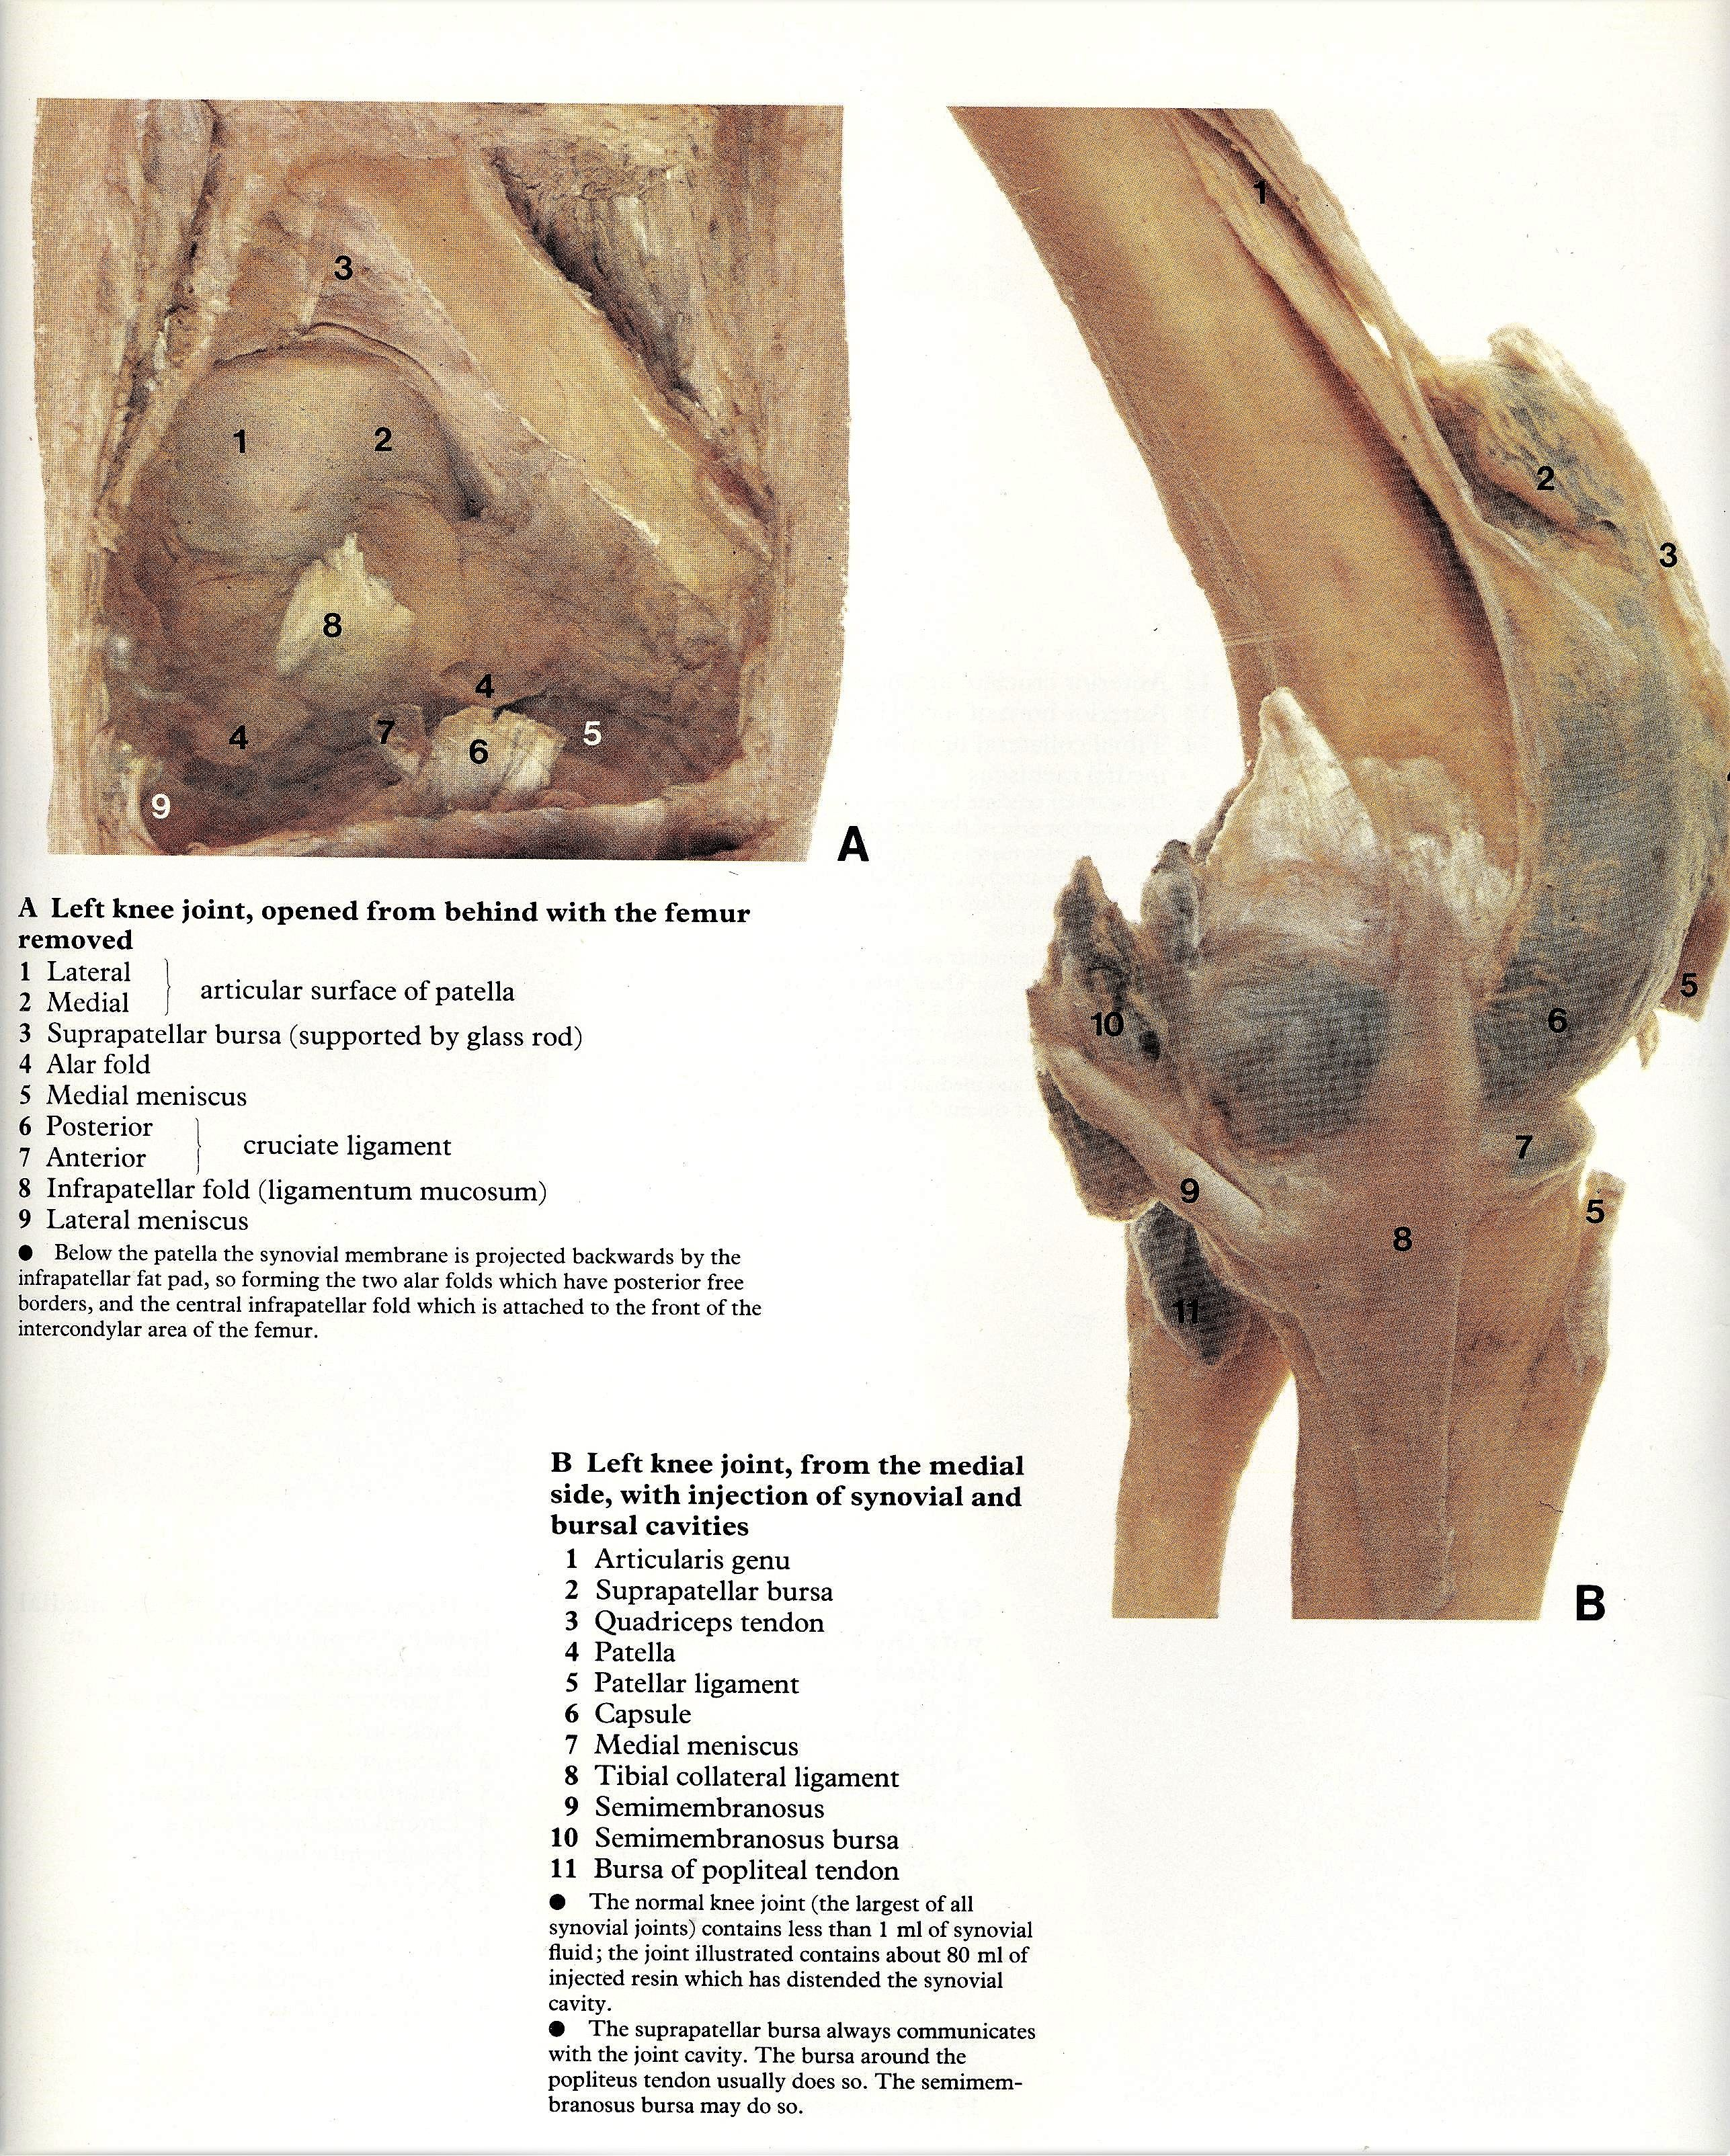 Pin By Bengt Sandberg On Part 6 Of 6 Lower Limb Atlas Of Human